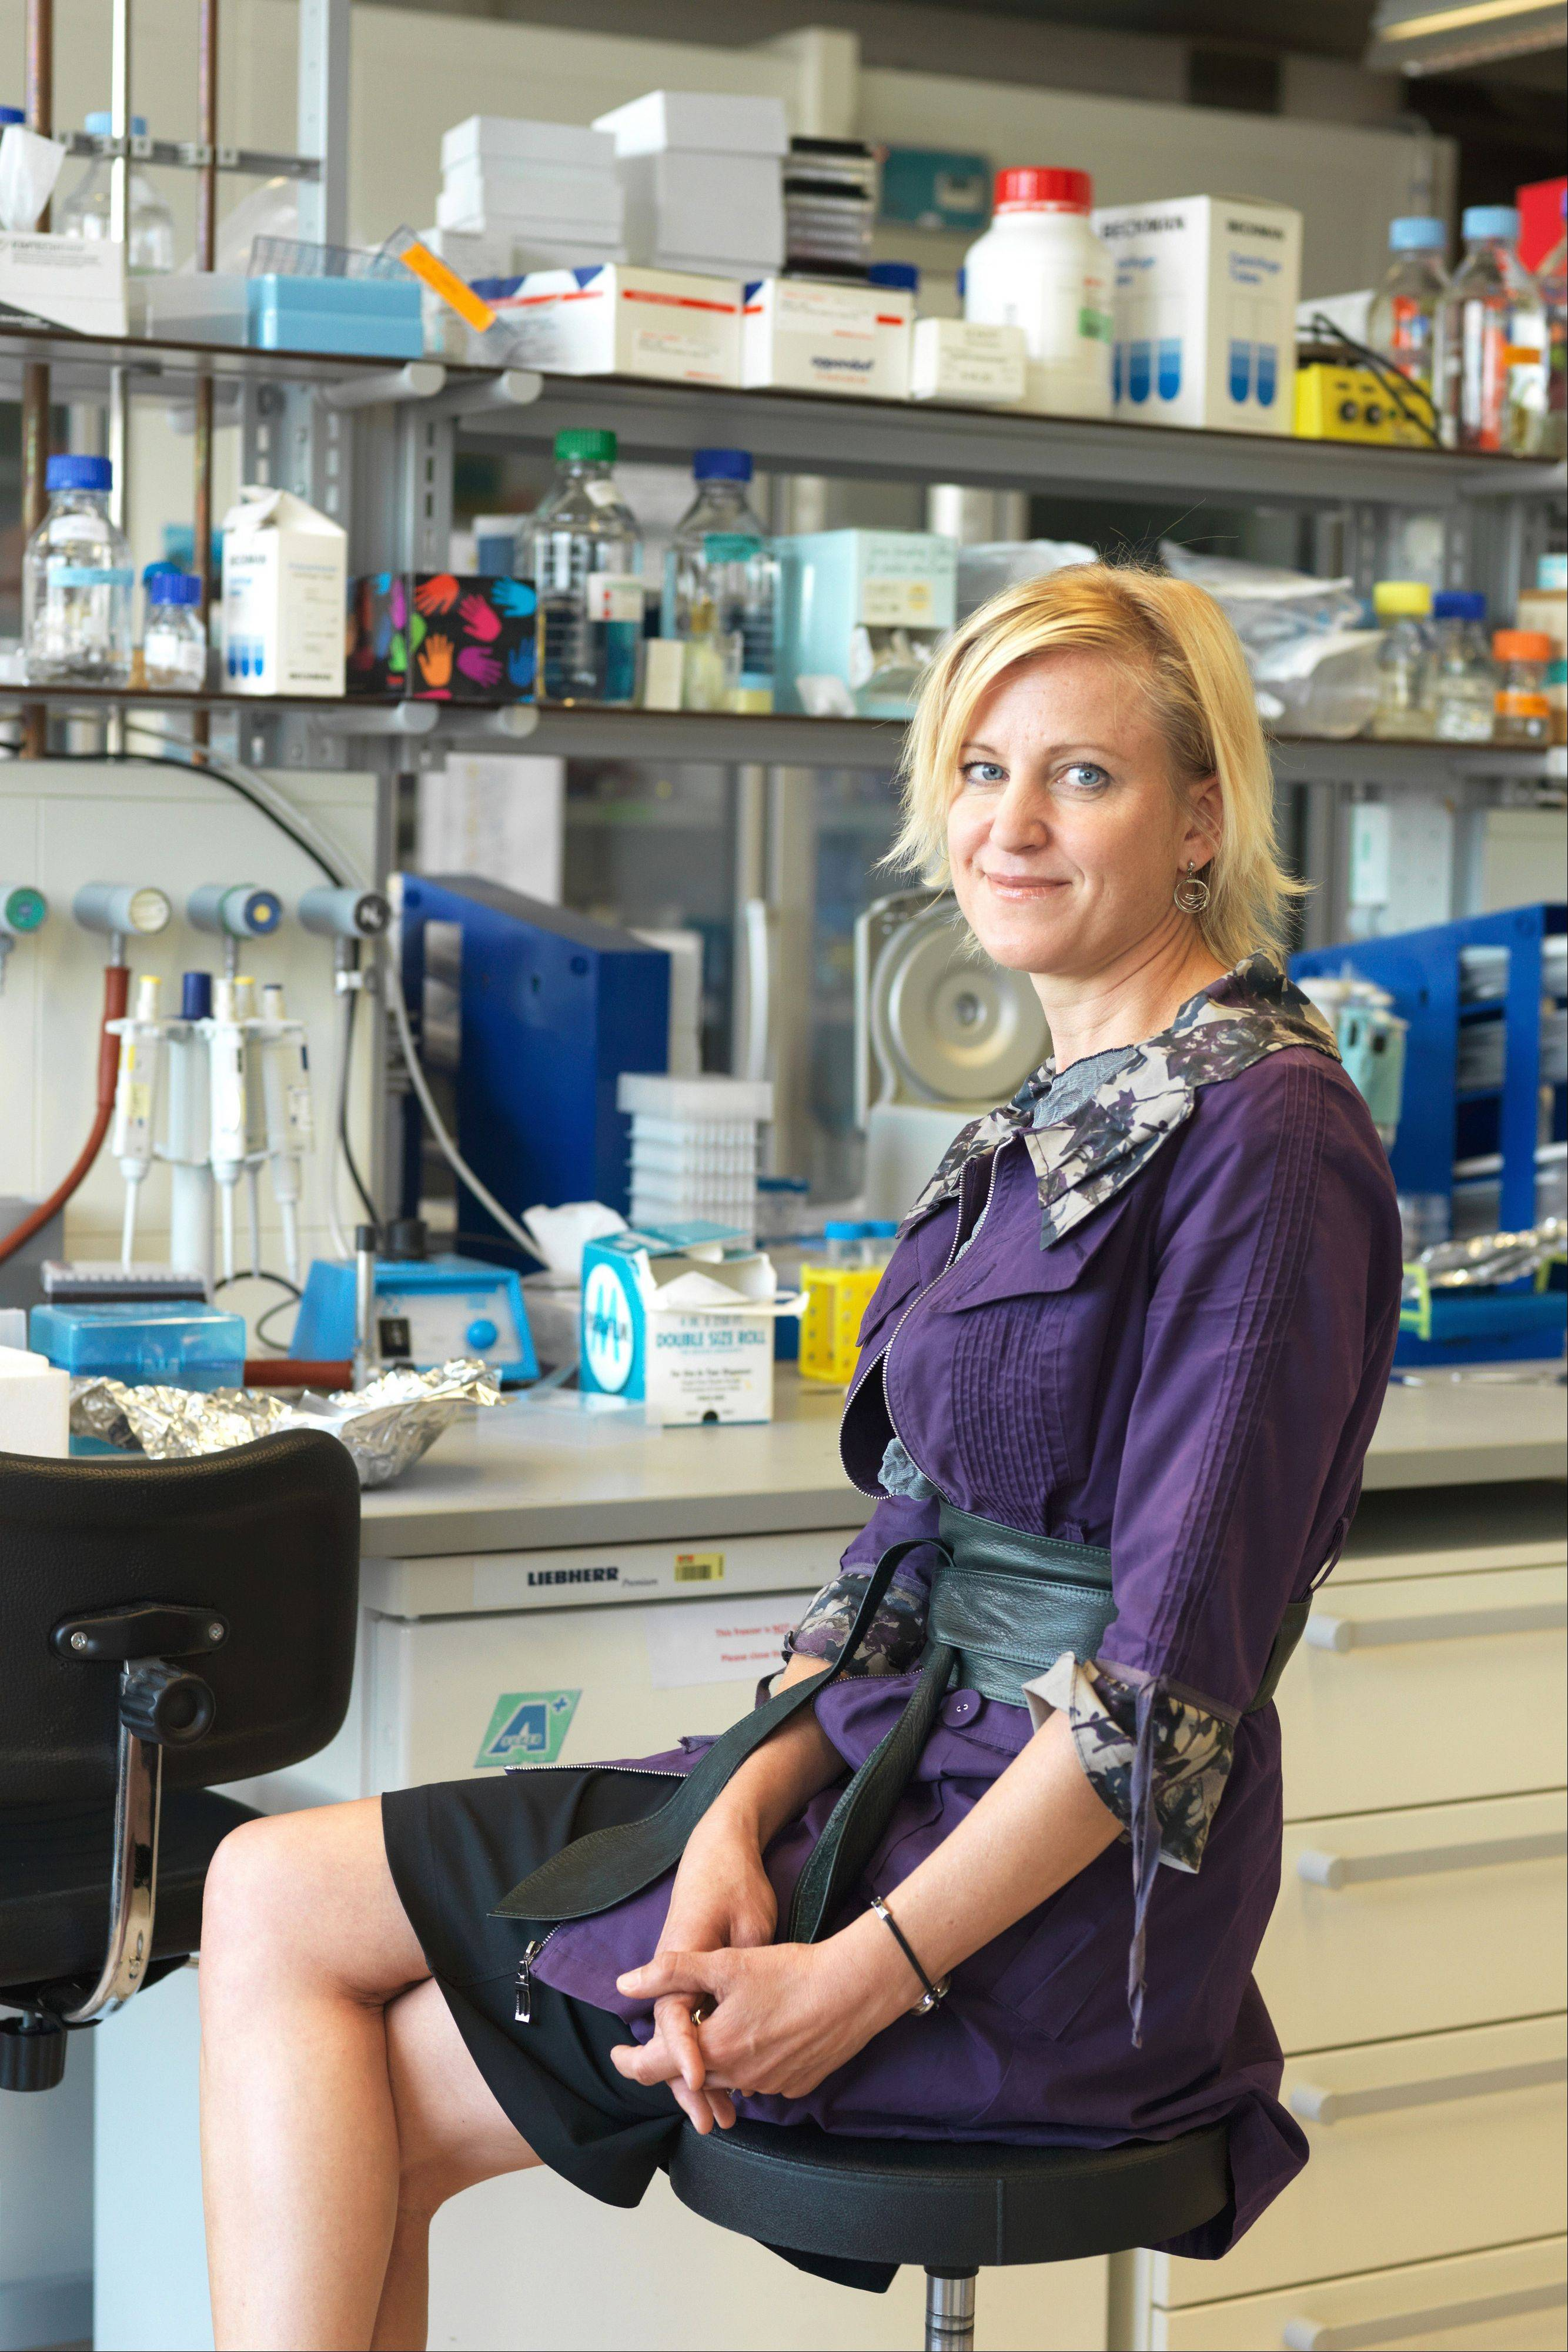 "Bioengineer Melody Swartz, a 1987 graduate of Glenbard West High School, has been named one of 23 new MacArthur Fellows for 2012. She will receive $500,000 in ""no-strings-attached support"" over the next five years from the John D. and Catherine T. MacArthur Foundation.$PHOTOCREDIT_ON$Courtesy of the John D. and Catherine T. MacArthur Foundation$PHOTOCREDIT_OFF$"